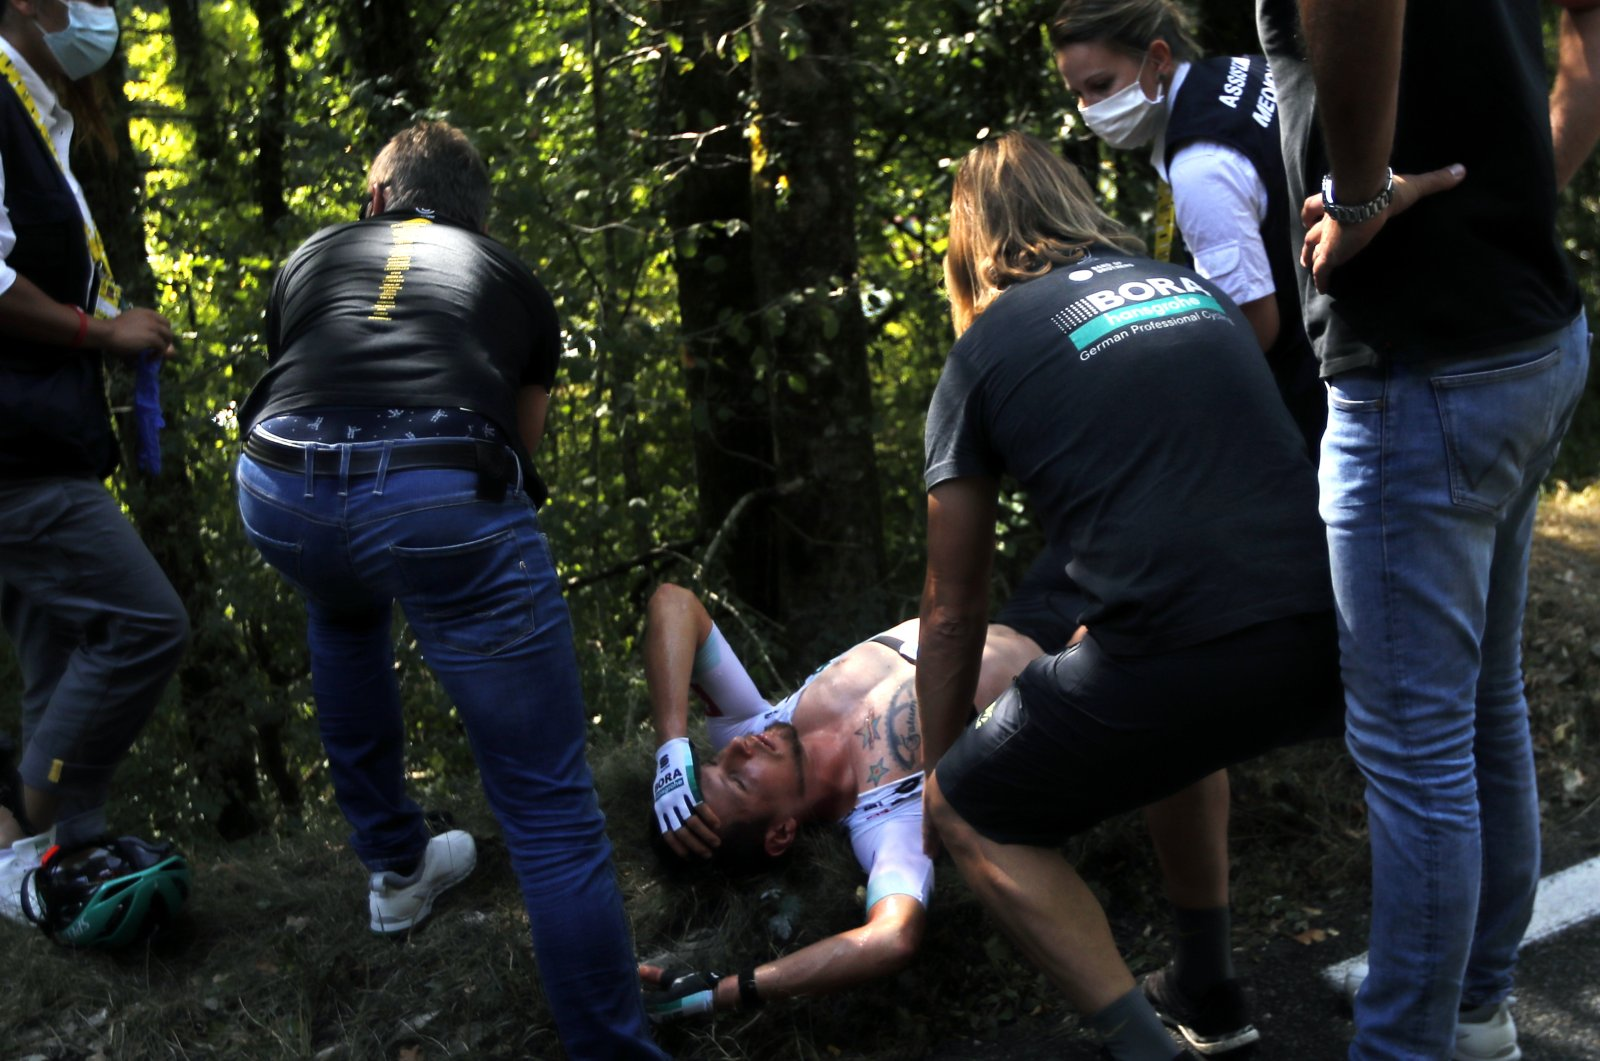 Lukas Postlberger of Austria is treated by medics during stage 19 of the Tour de France cycling race over 166 kilometers (103 miles), with the start in Bourg-en-Bresse and finish in Champagnole, France, Sept. 18, 2020. (AP Photo)